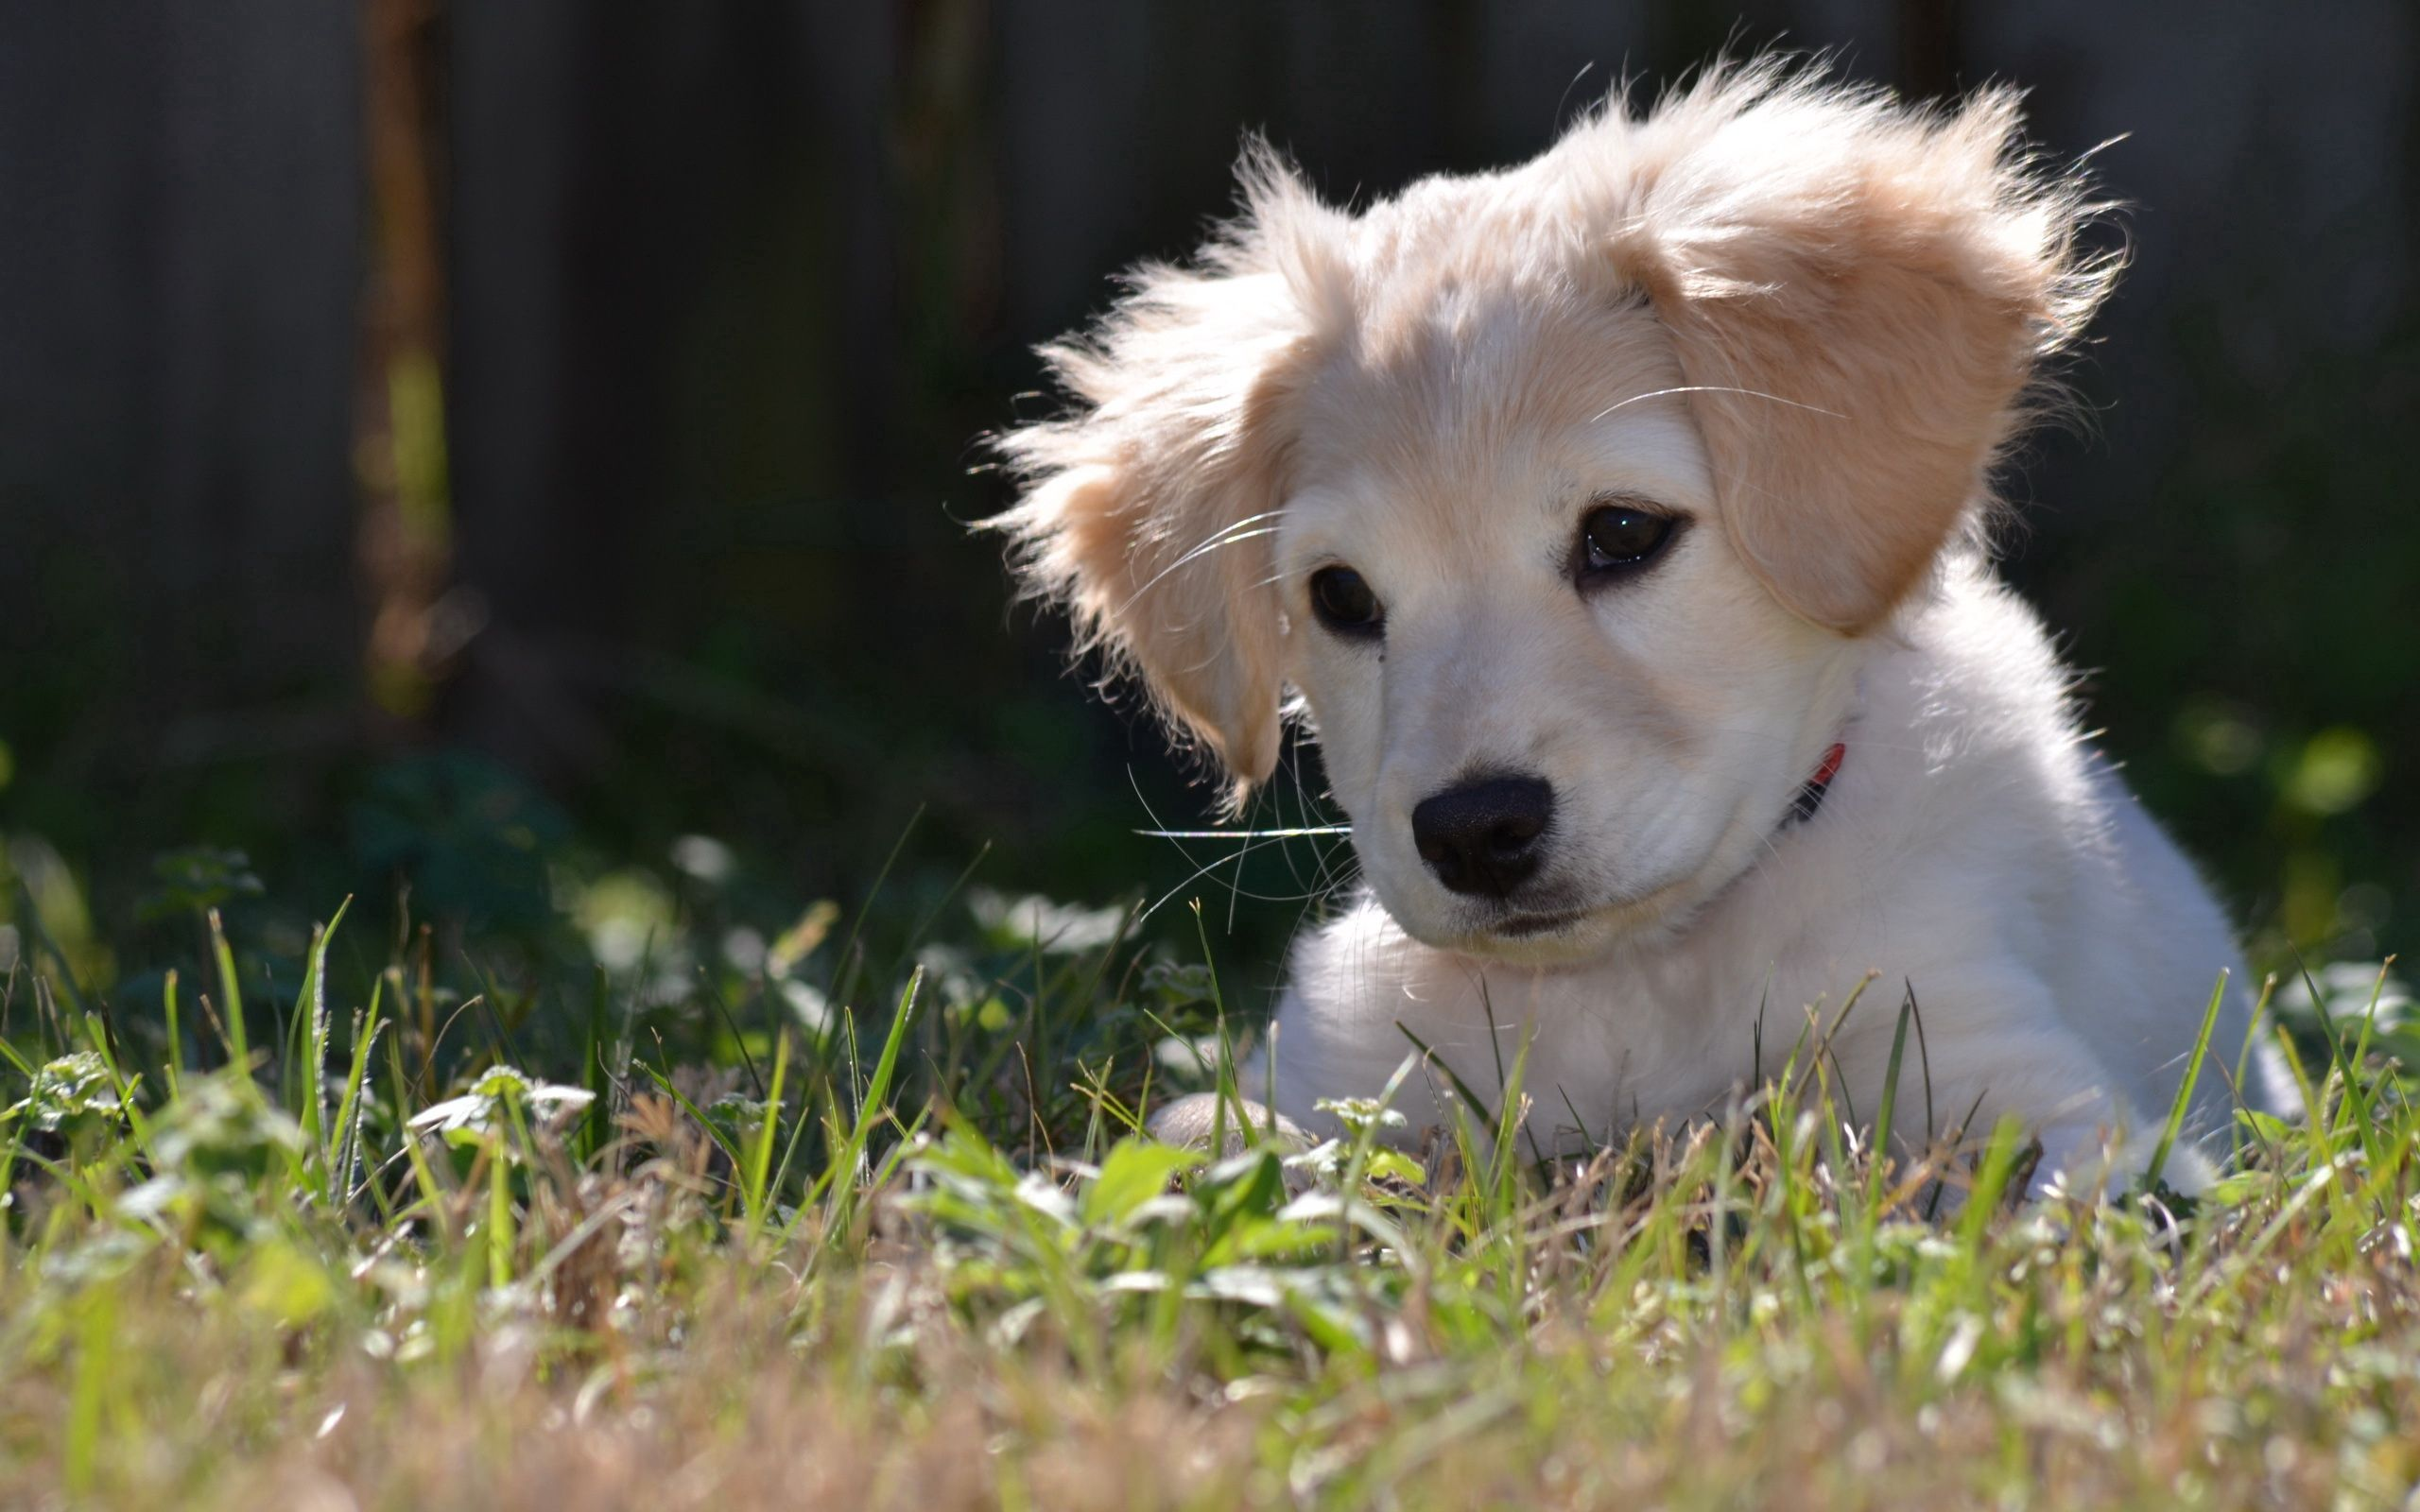 108304 Screensavers and Wallpapers Puppy for phone. Download Animals, Nature, Dog, Puppy pictures for free